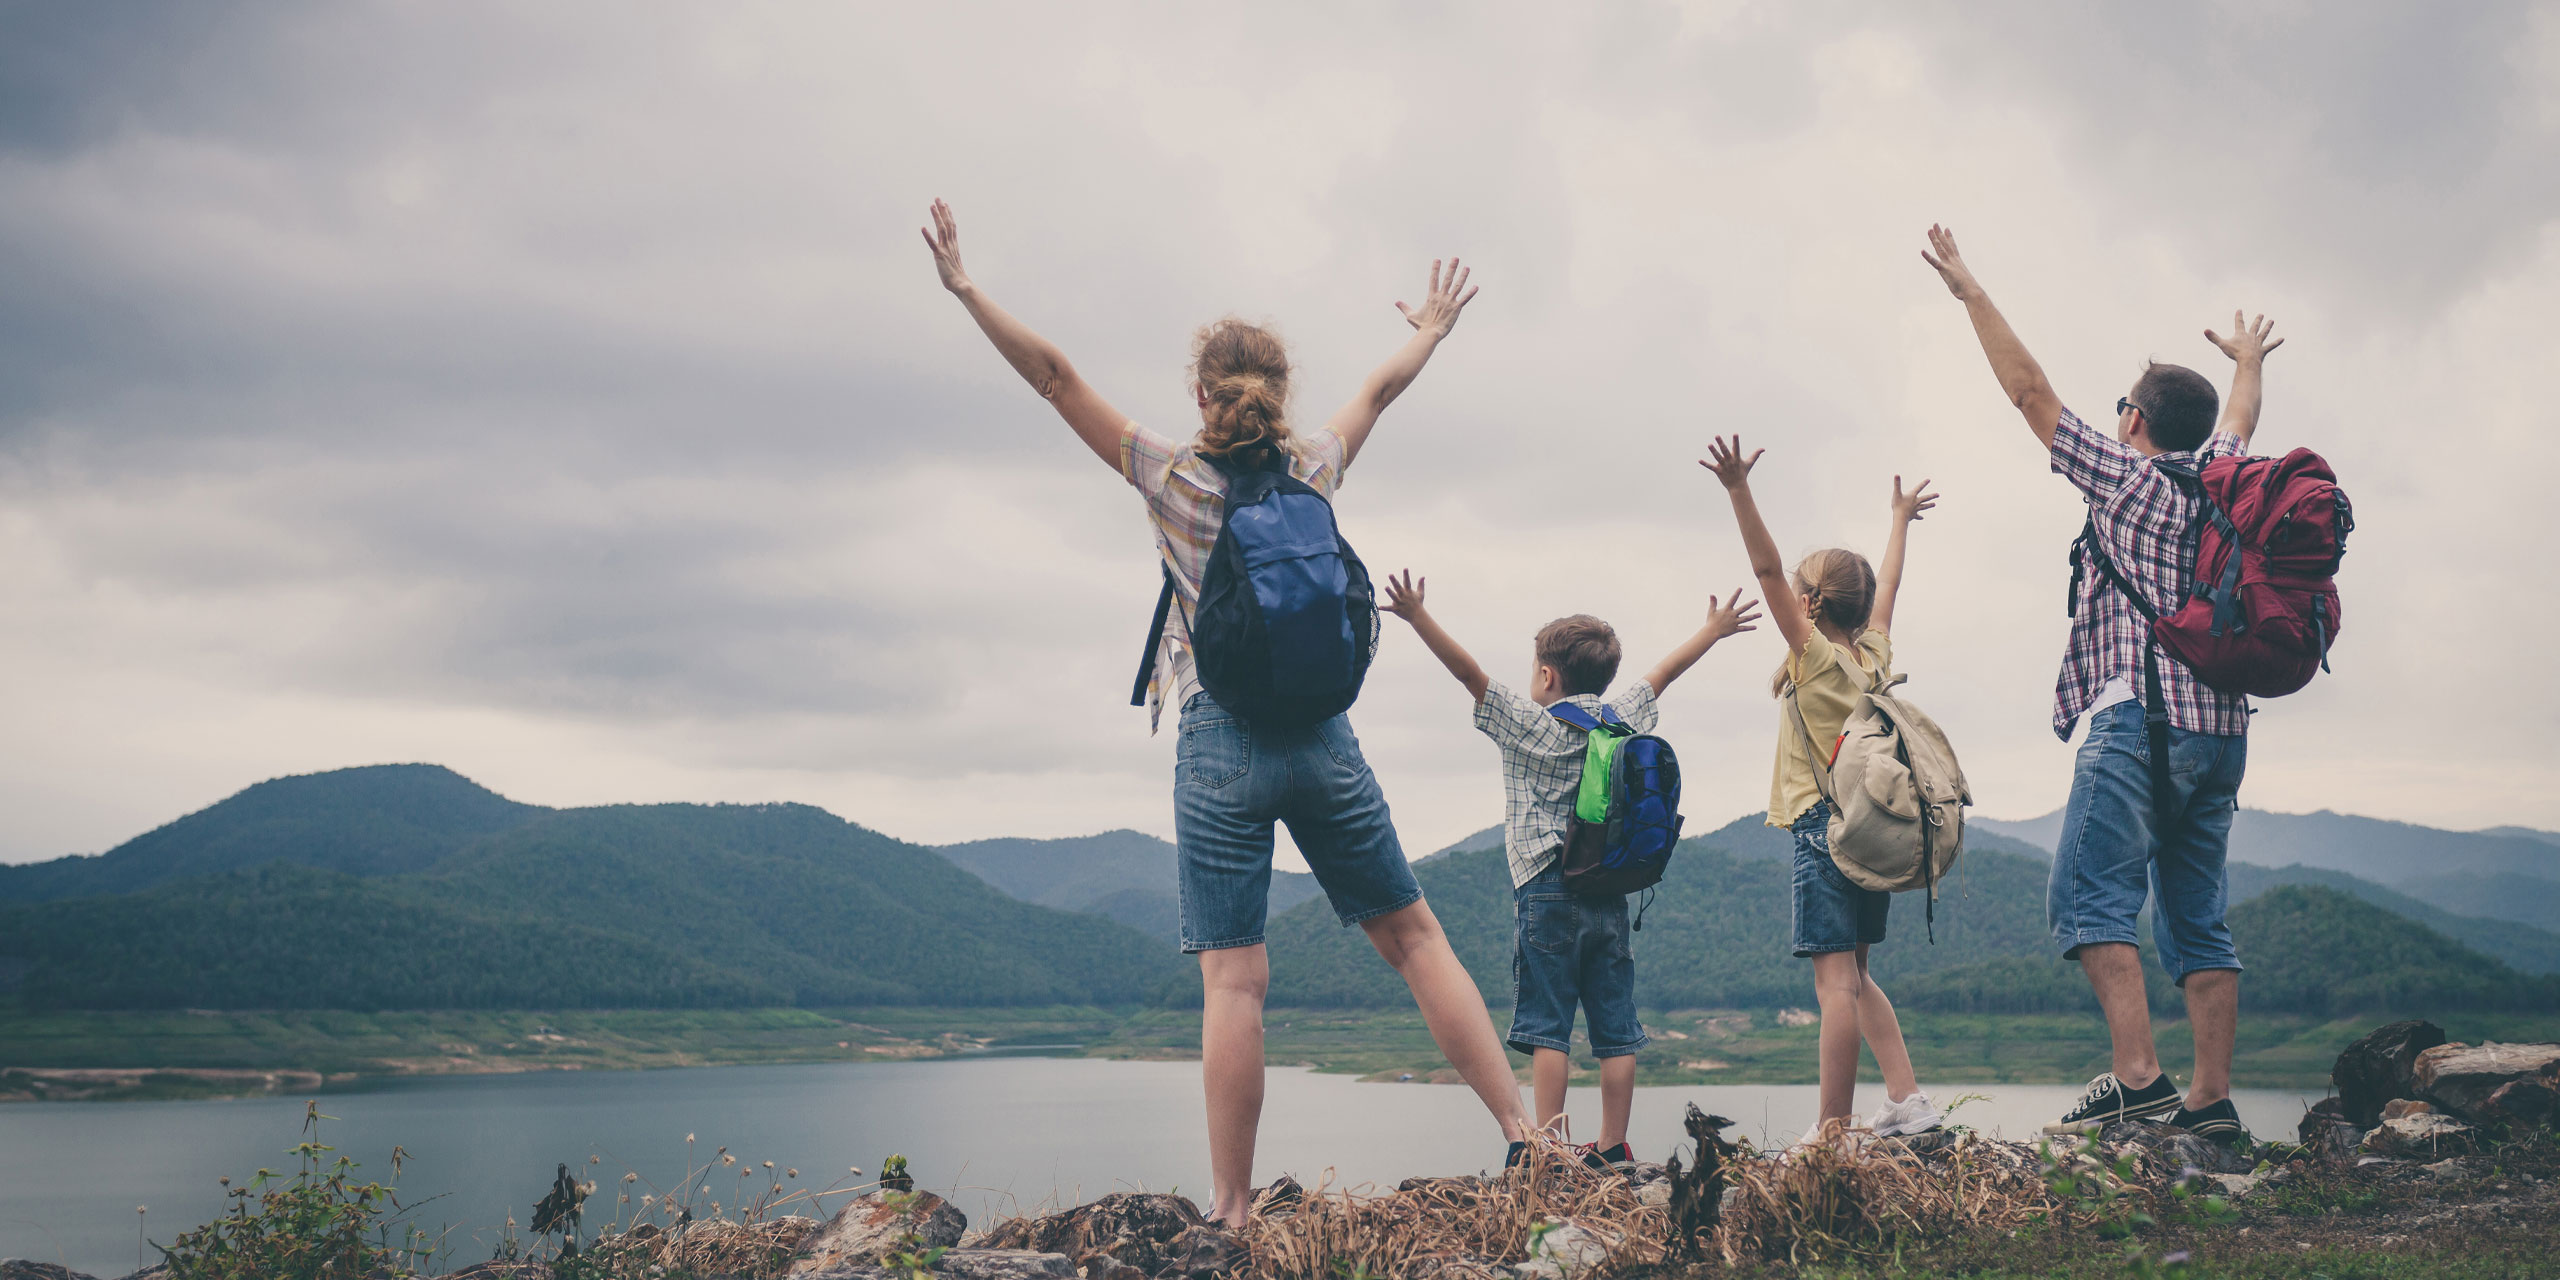 Family hiking with backpacks; Courtesy of altanaka/Shutterstock.com